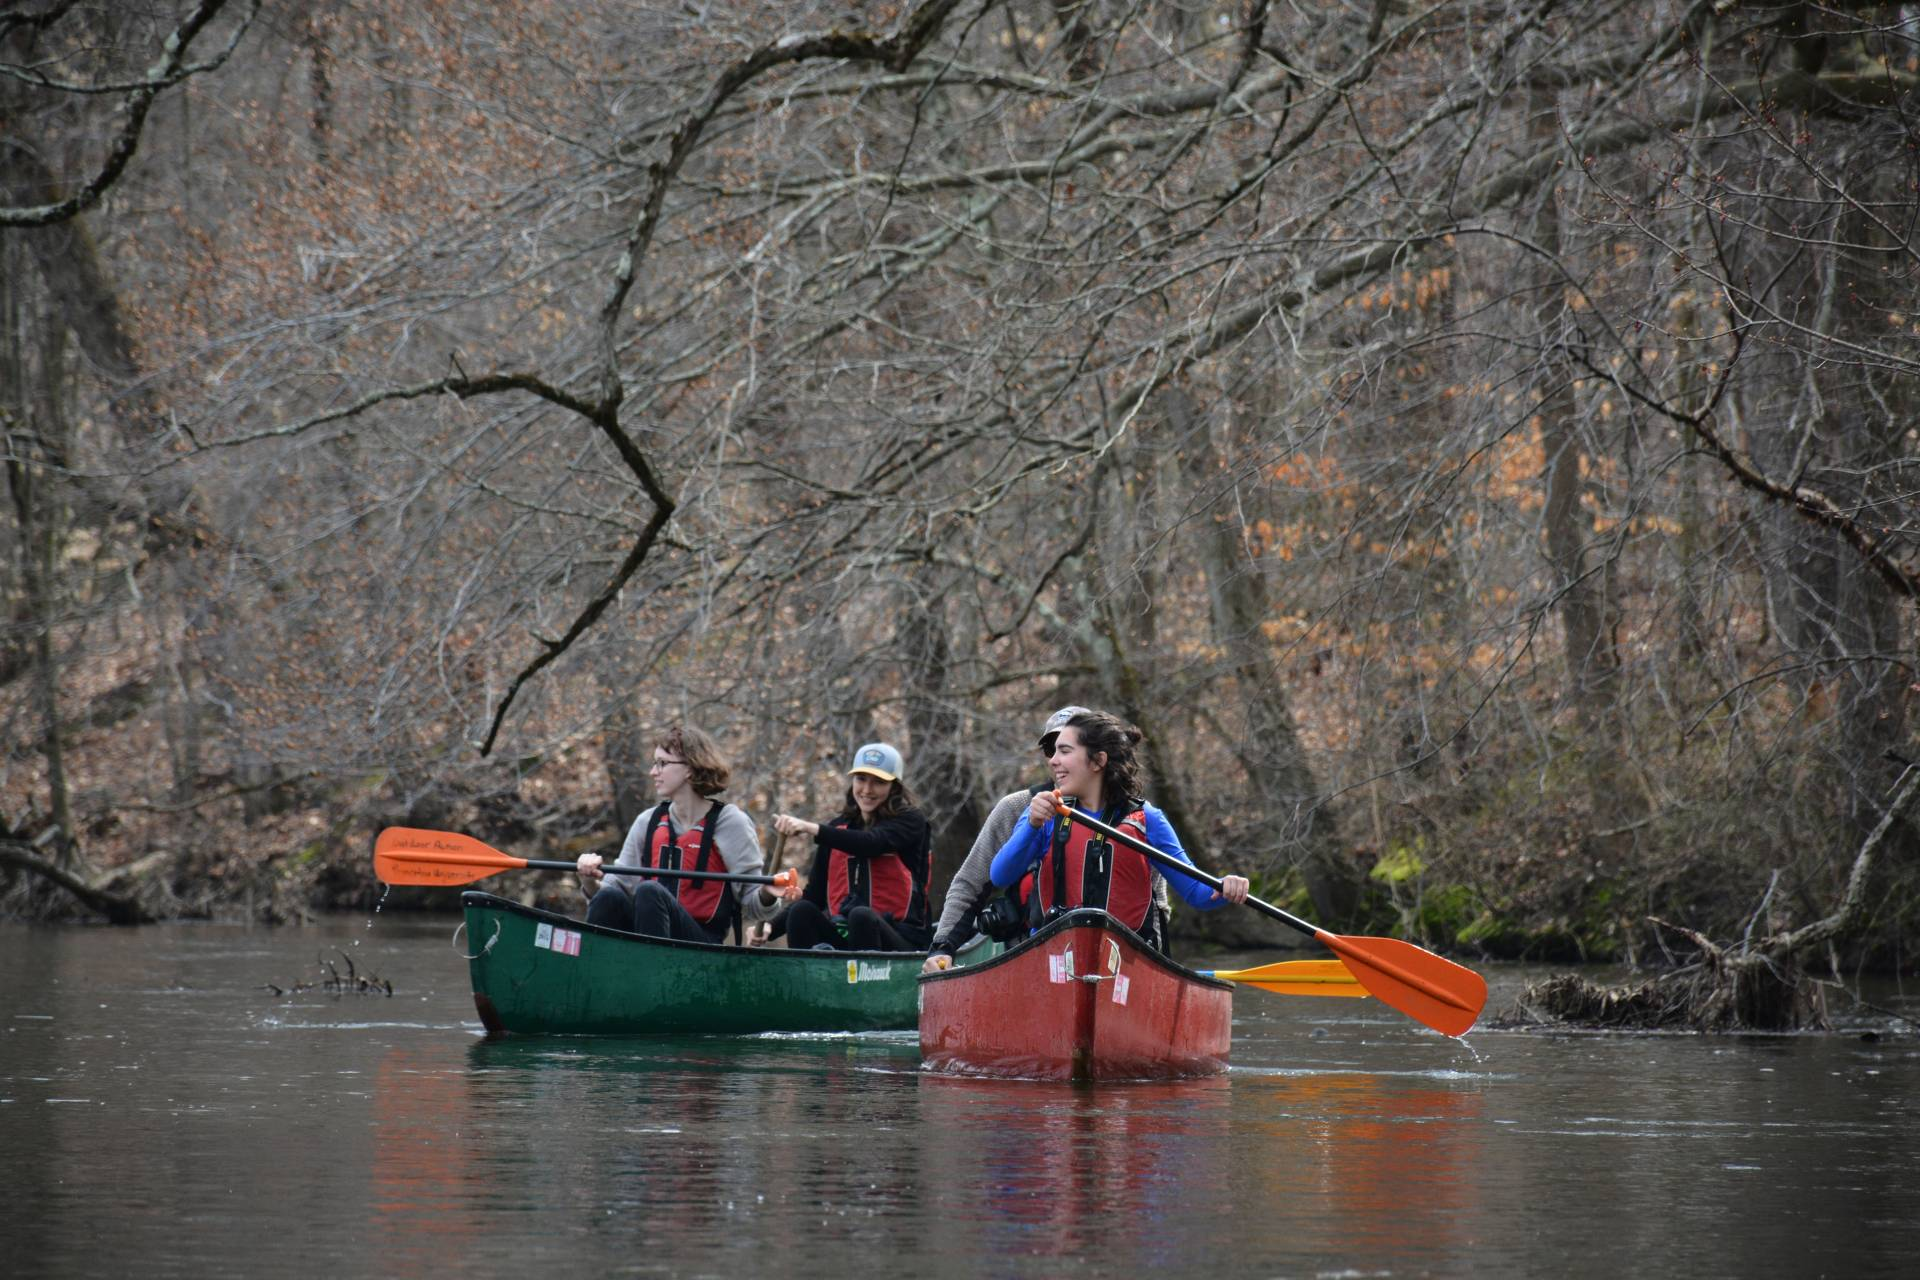 Course explores the Millstone River, Princeton's backyard